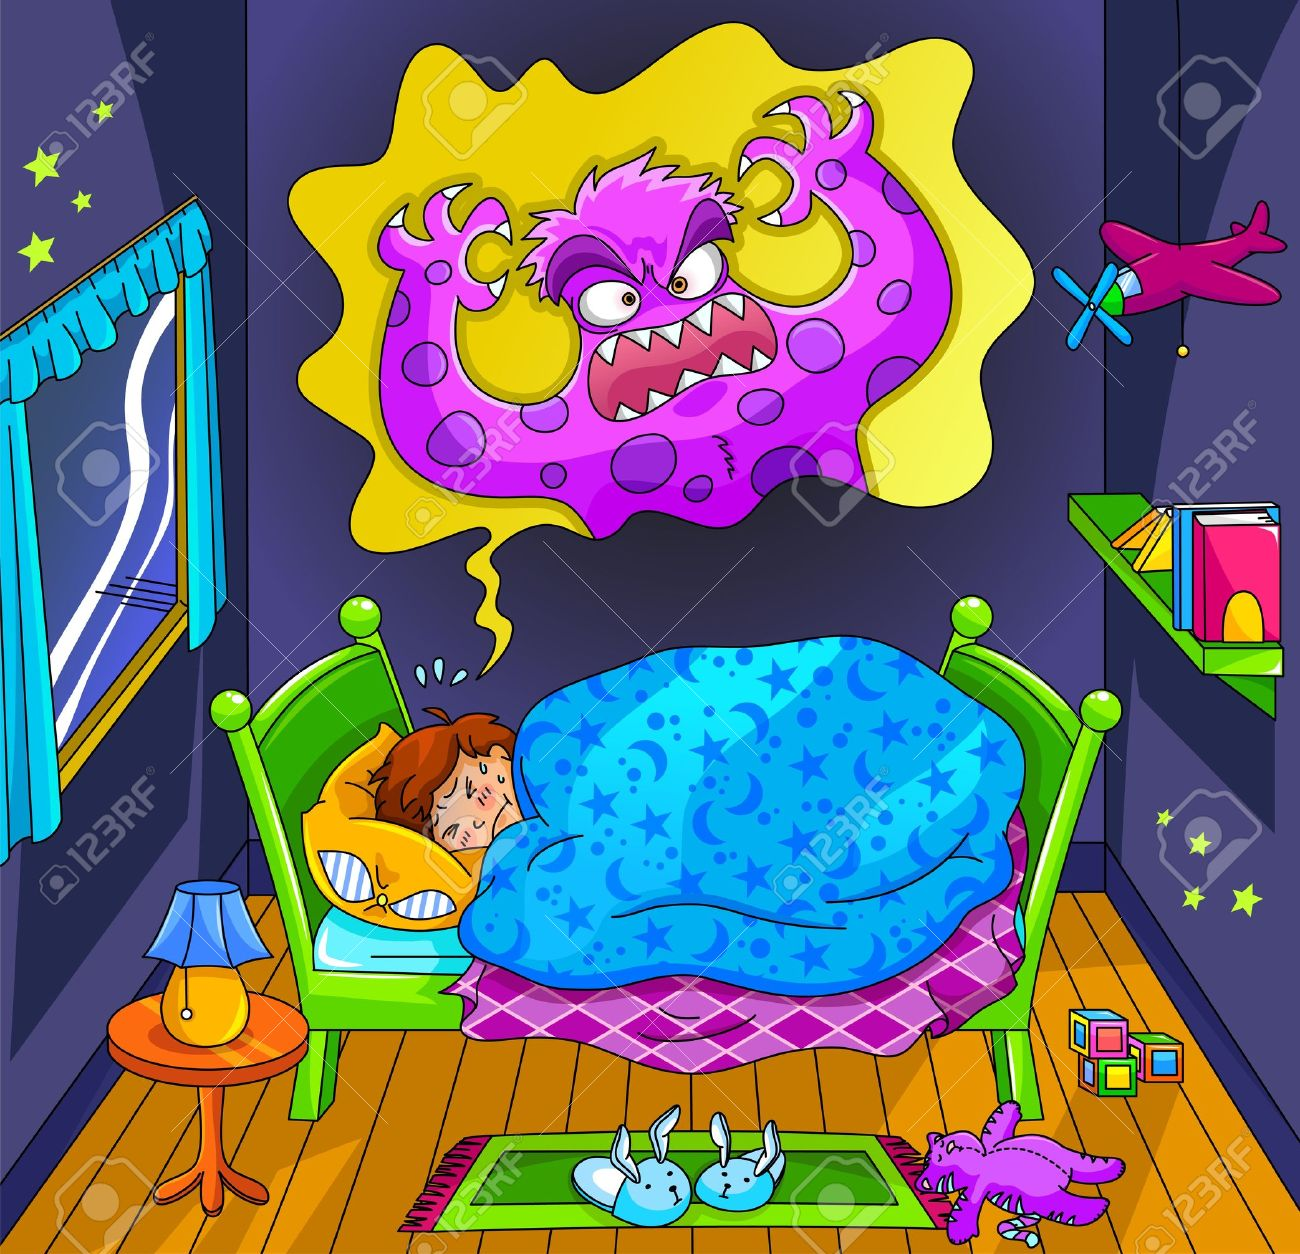 Scared little boy dreaming about a monster Stock Vector - 16525693